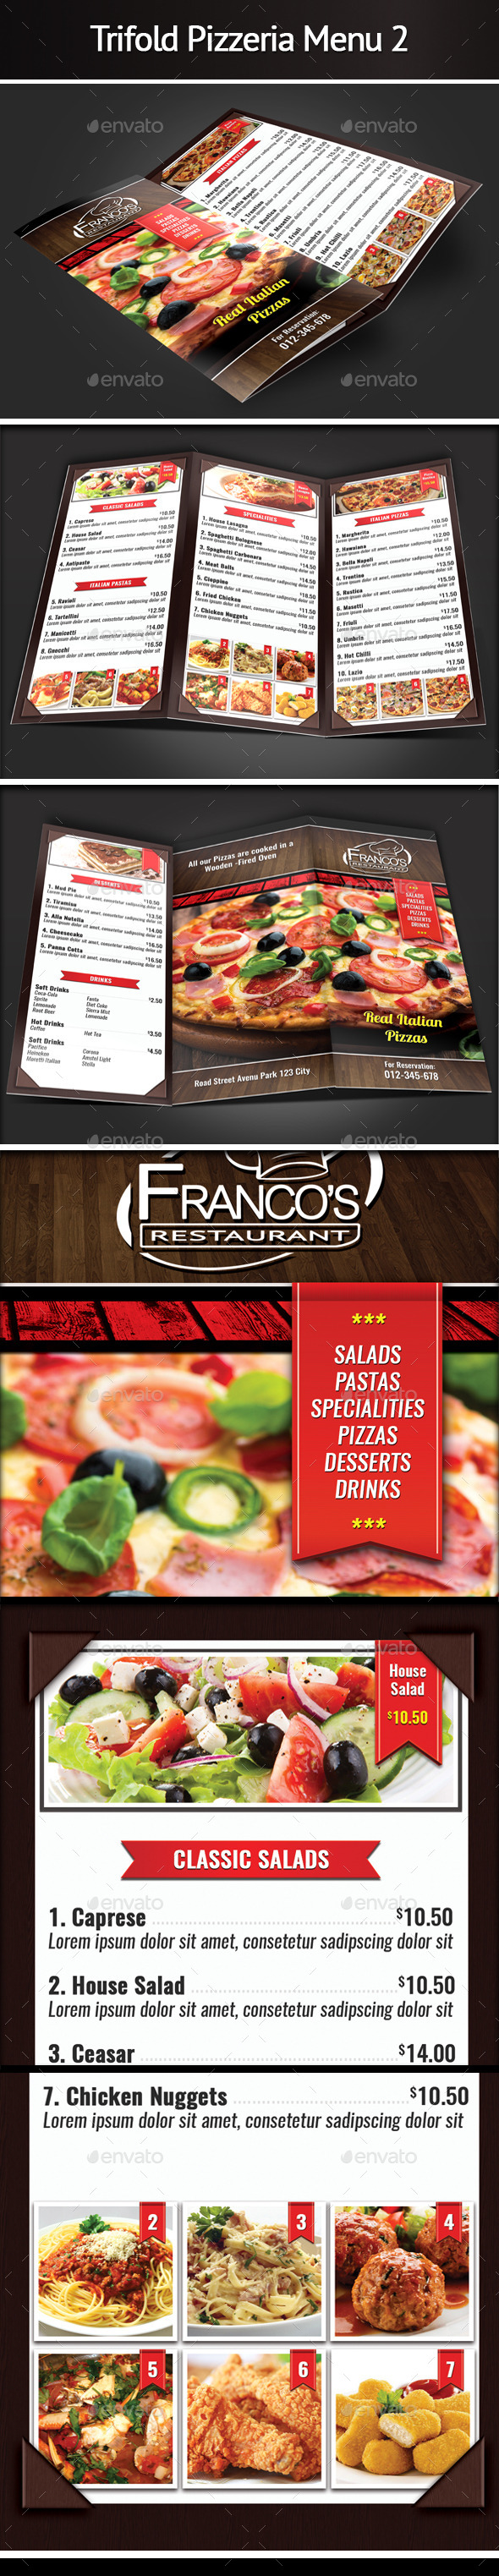 Trifold Pizzeria Menu 2 - Food Menus Print Templates